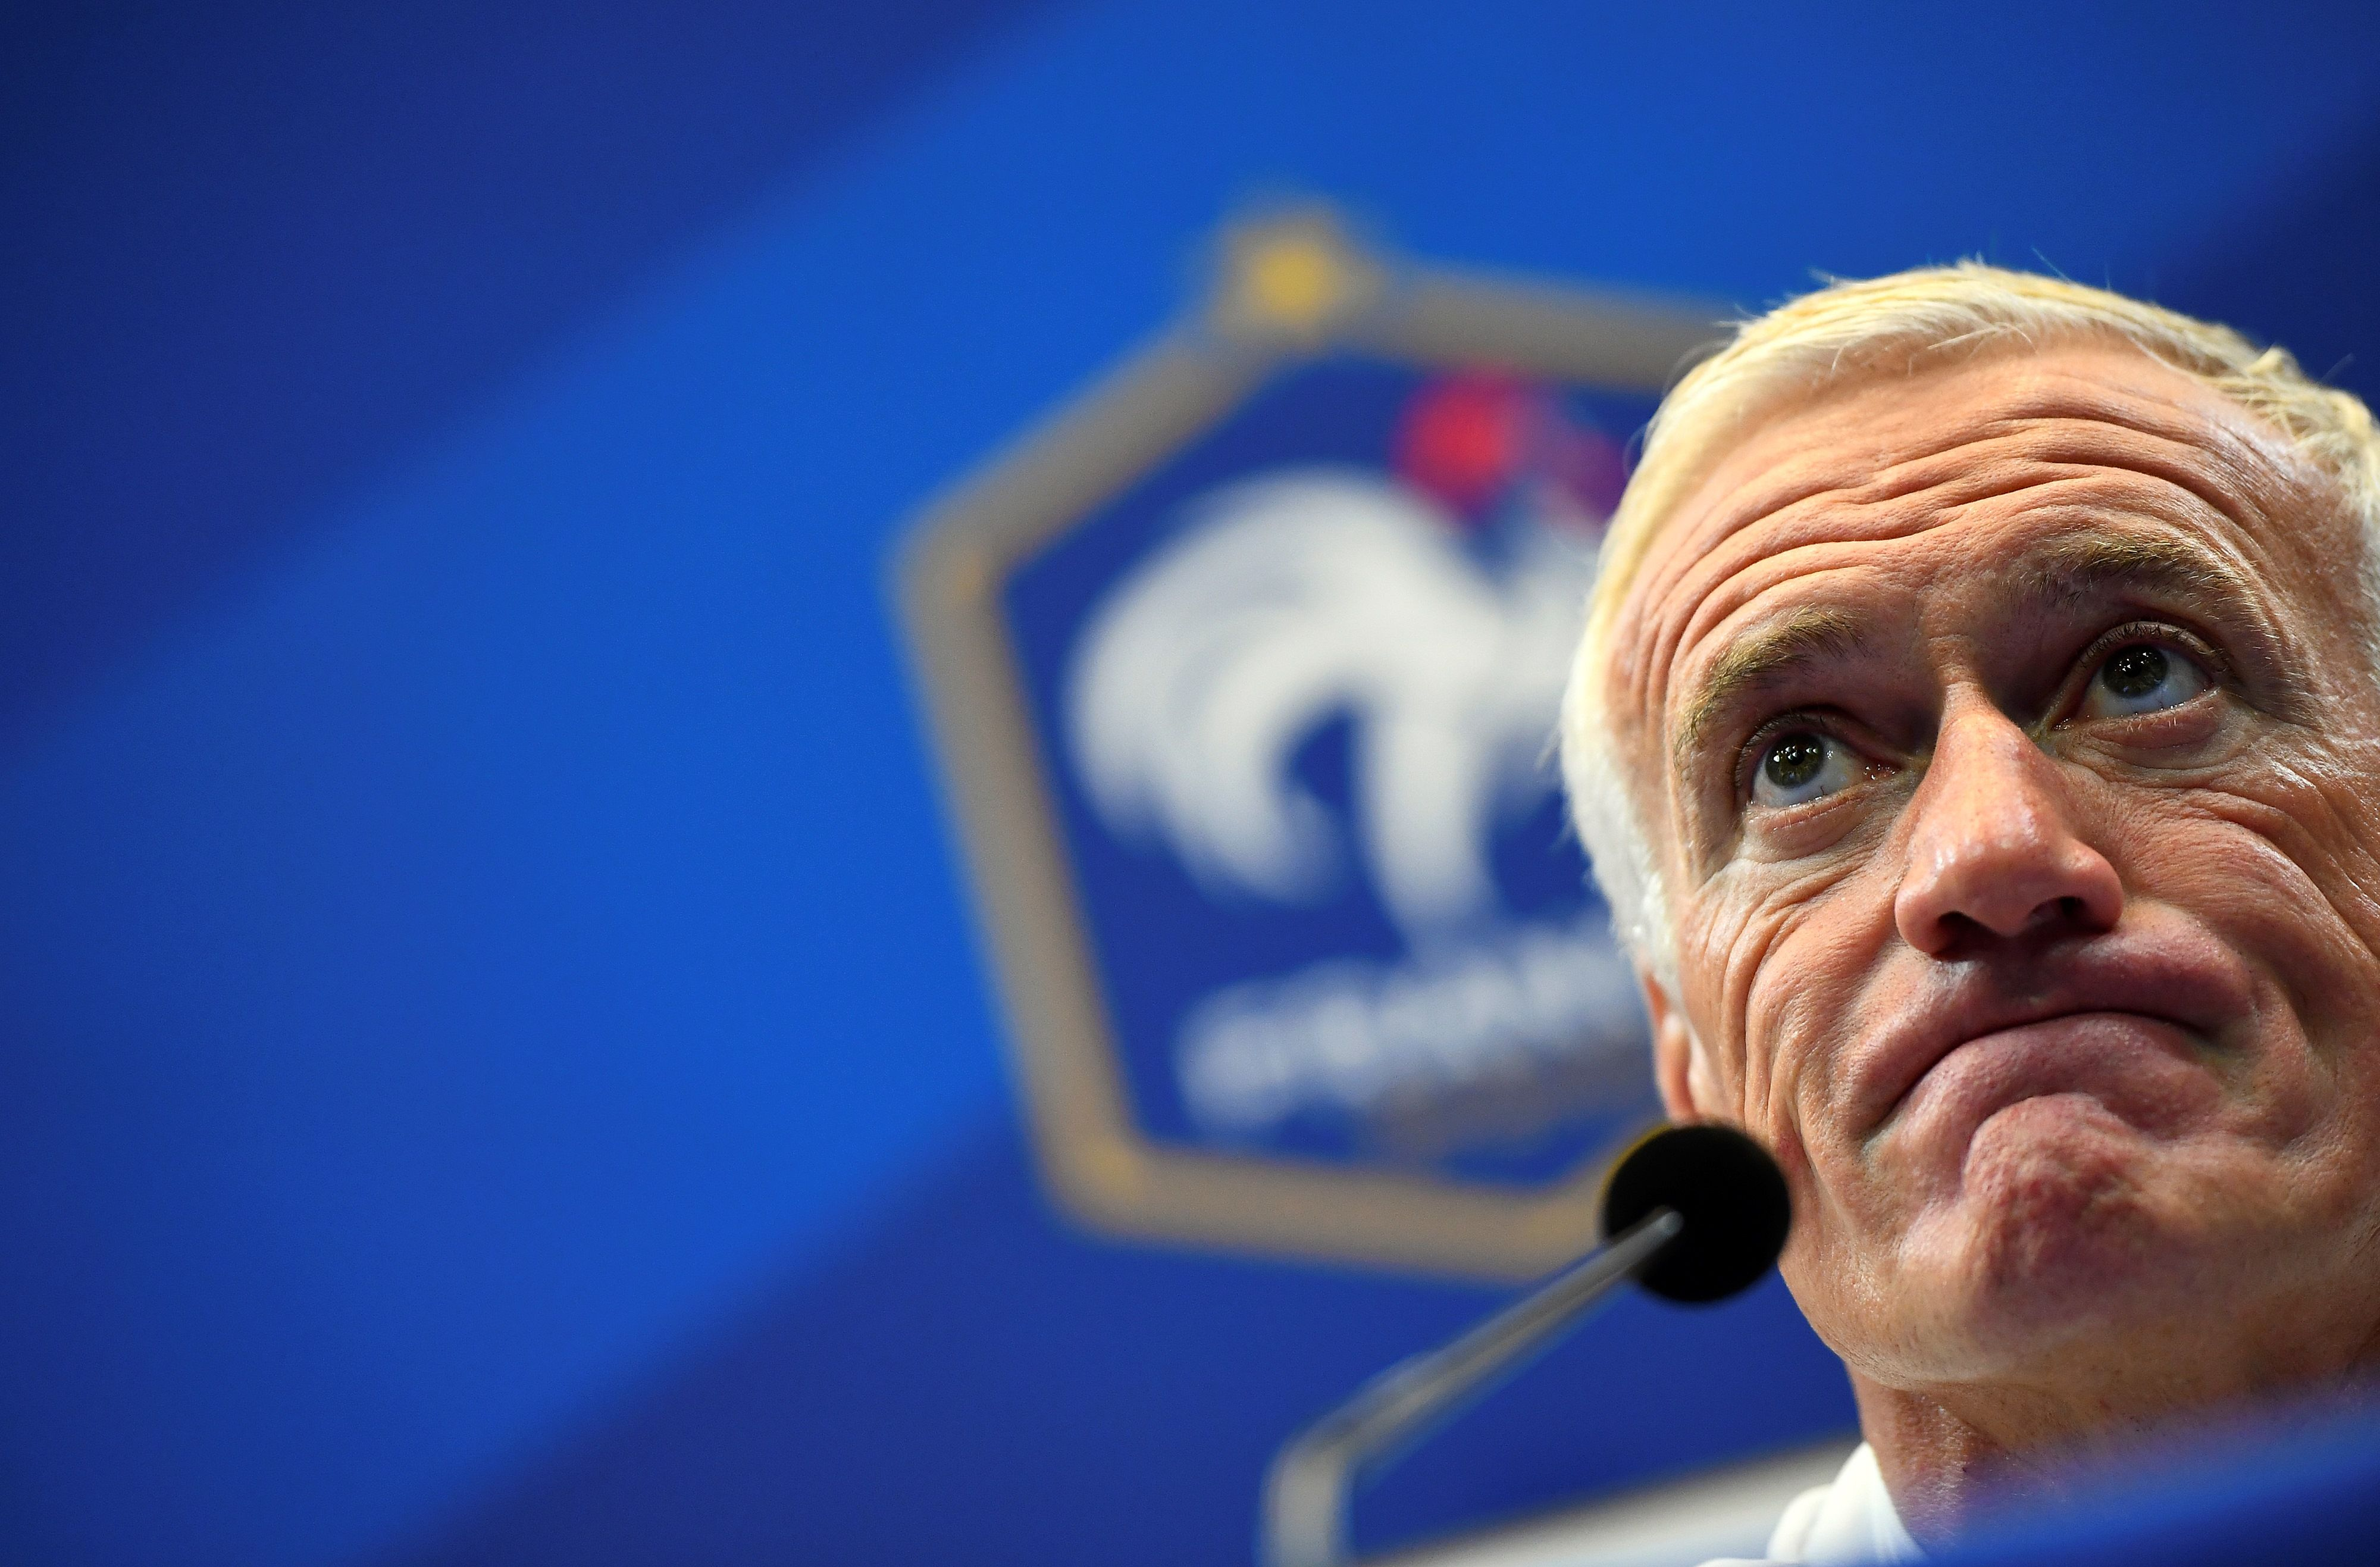 Football - Equipe de France - Deschamps «n'attend rien de Karim (Benzema)»